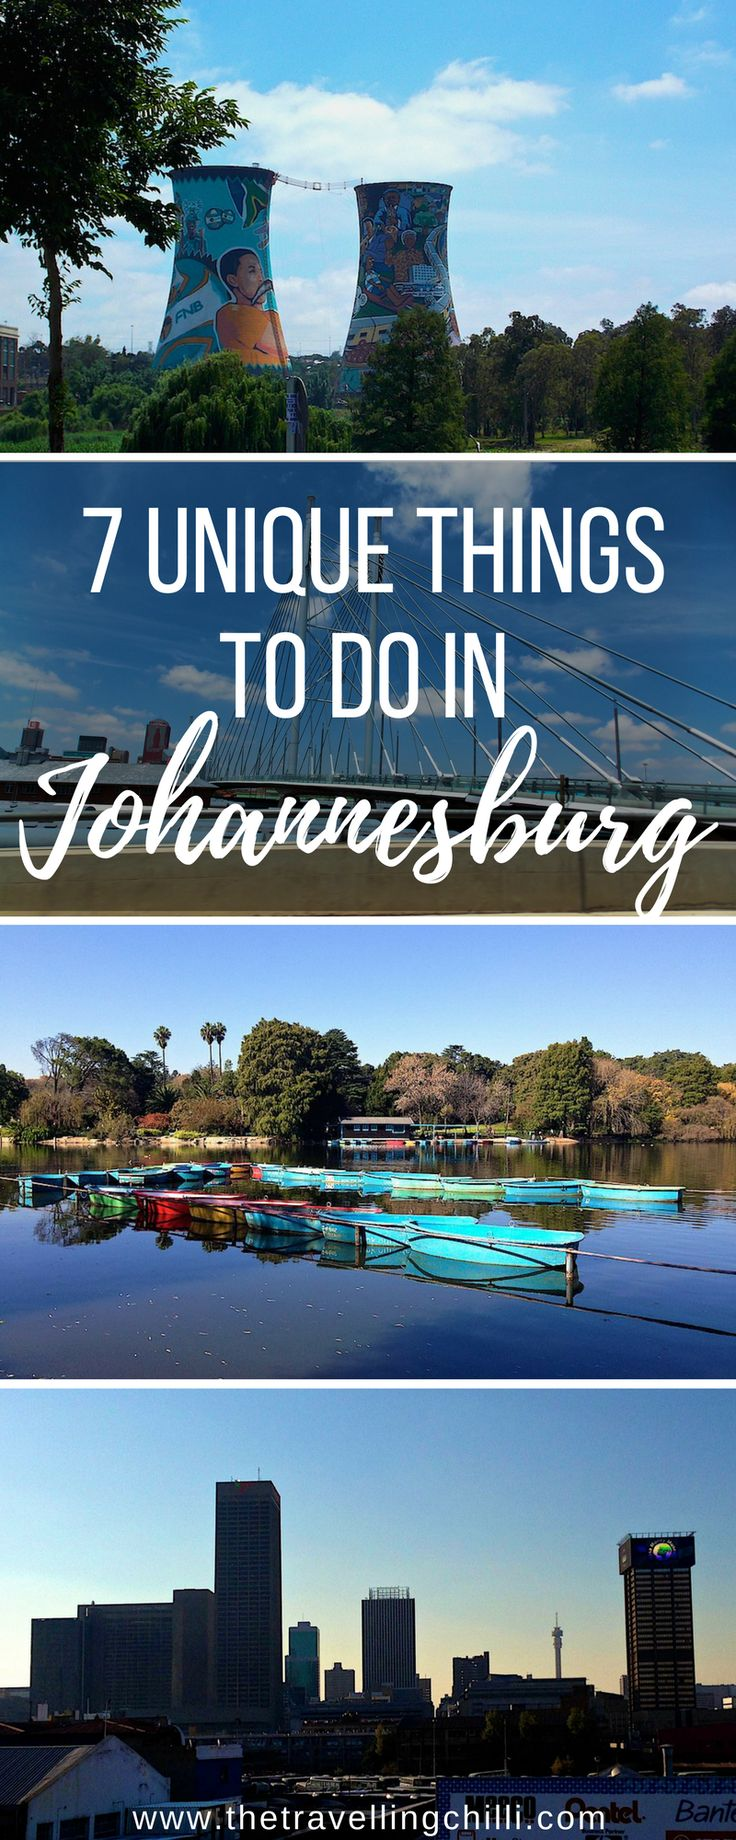 7 Unique things to do in Johannesburg South Africa | Interesting things to do in Johannesburg South Africa | Joburg | Jozi | #johannesburg #southafrica #joburg #thingstodo